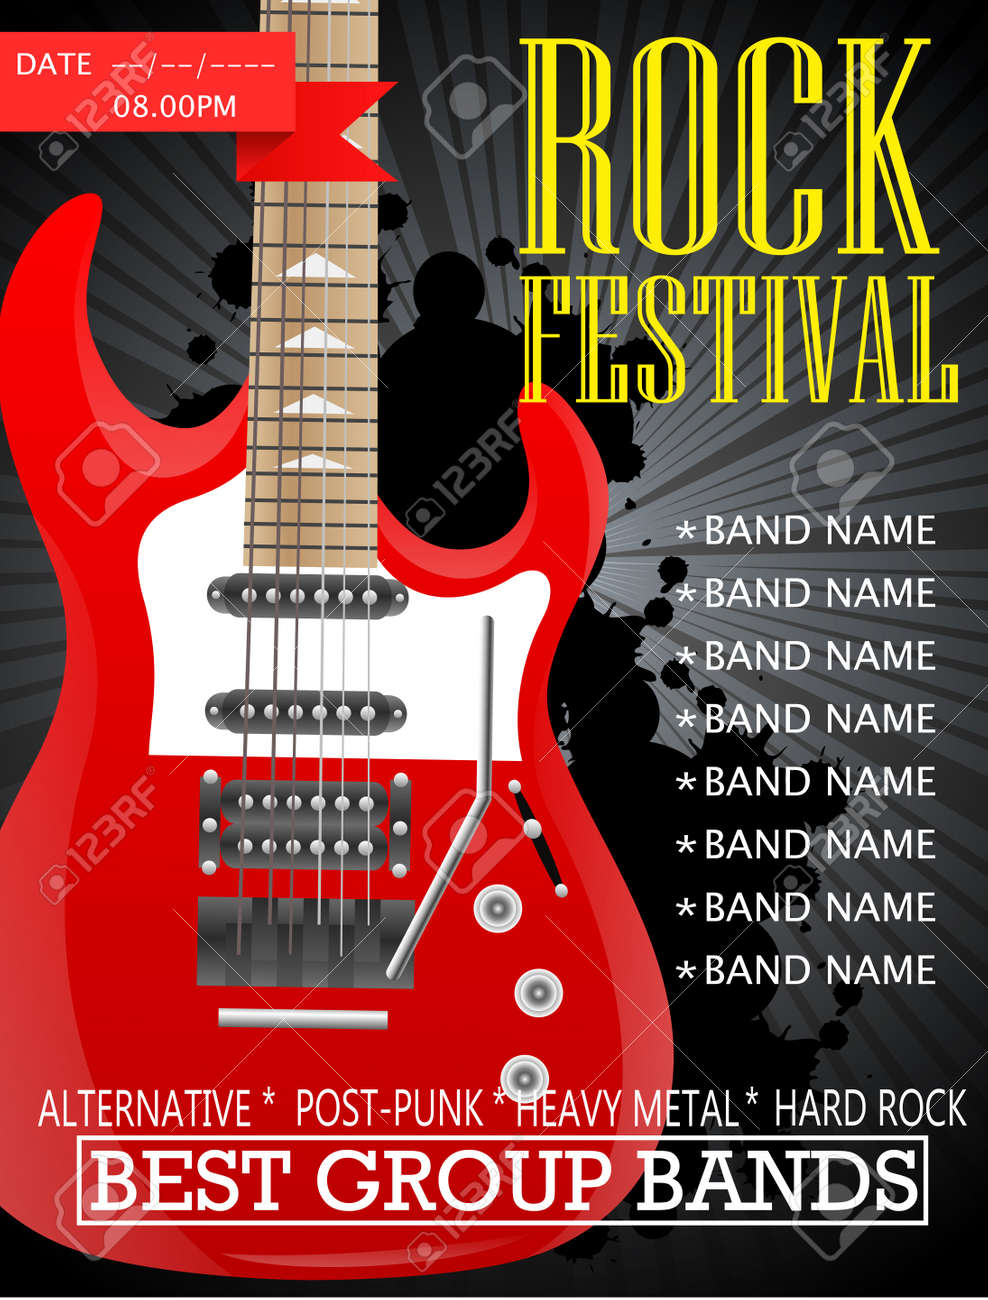 Rock Festival Banner Design Template With Guitar Vector Illustration Royalty Free Cliparts Vectors And Stock Illustration Image 92435968